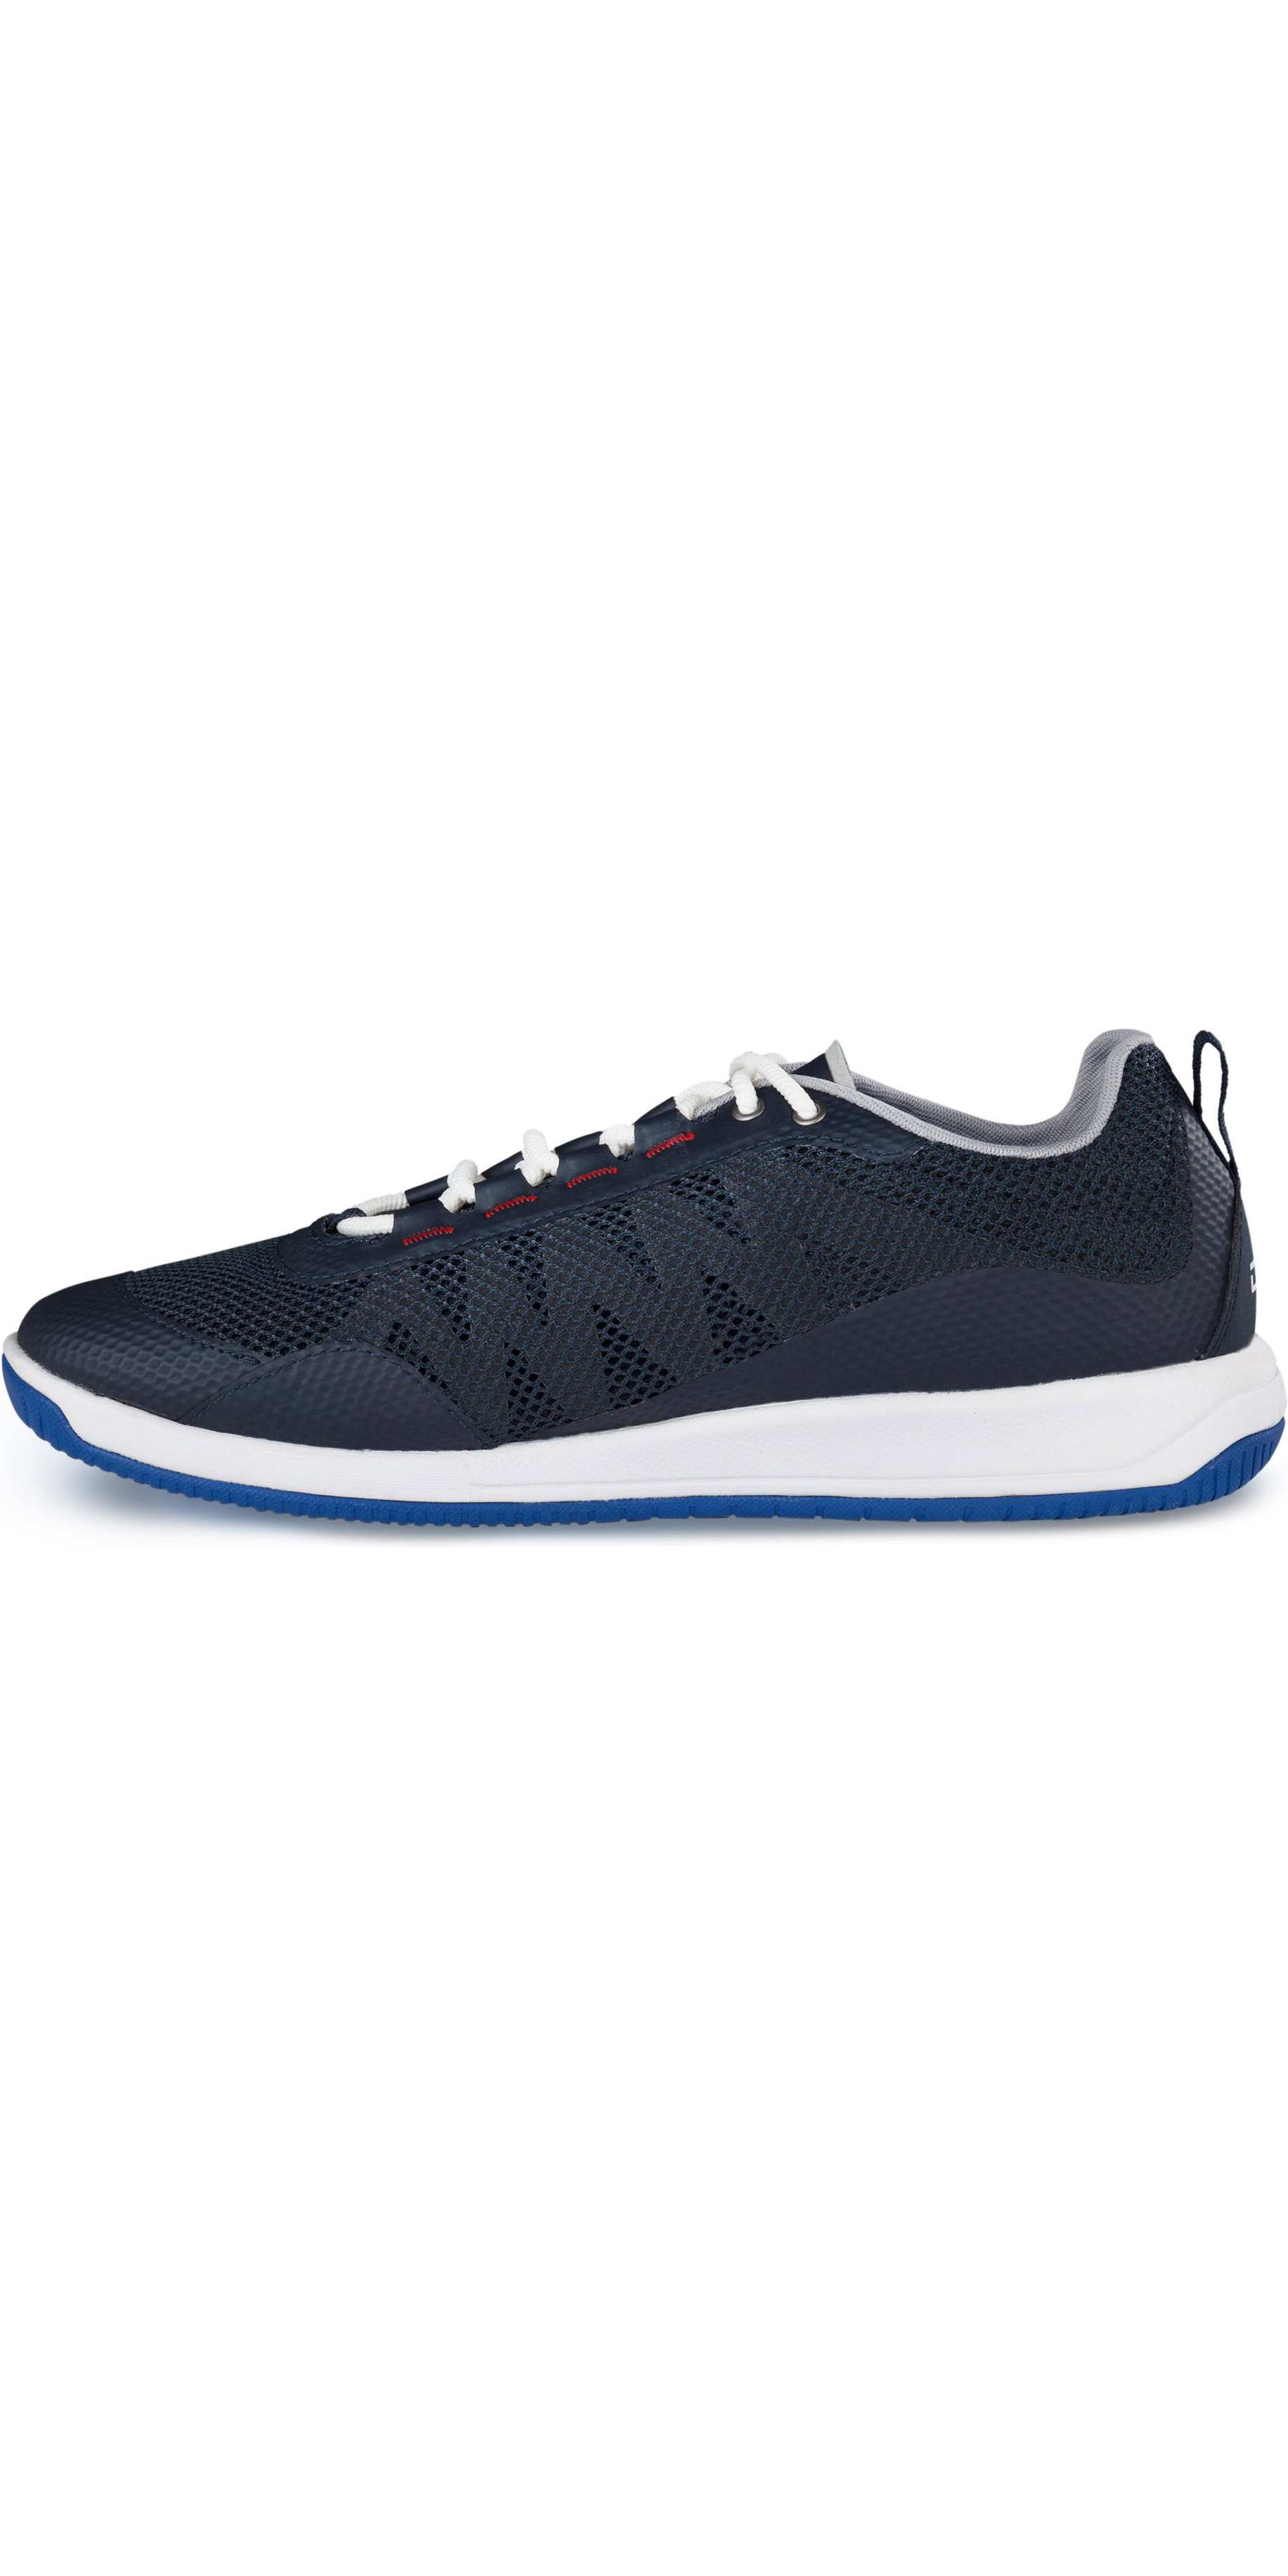 2019 Musto Dynamic Pro Lite Sailing Shoes Navy FUFT015